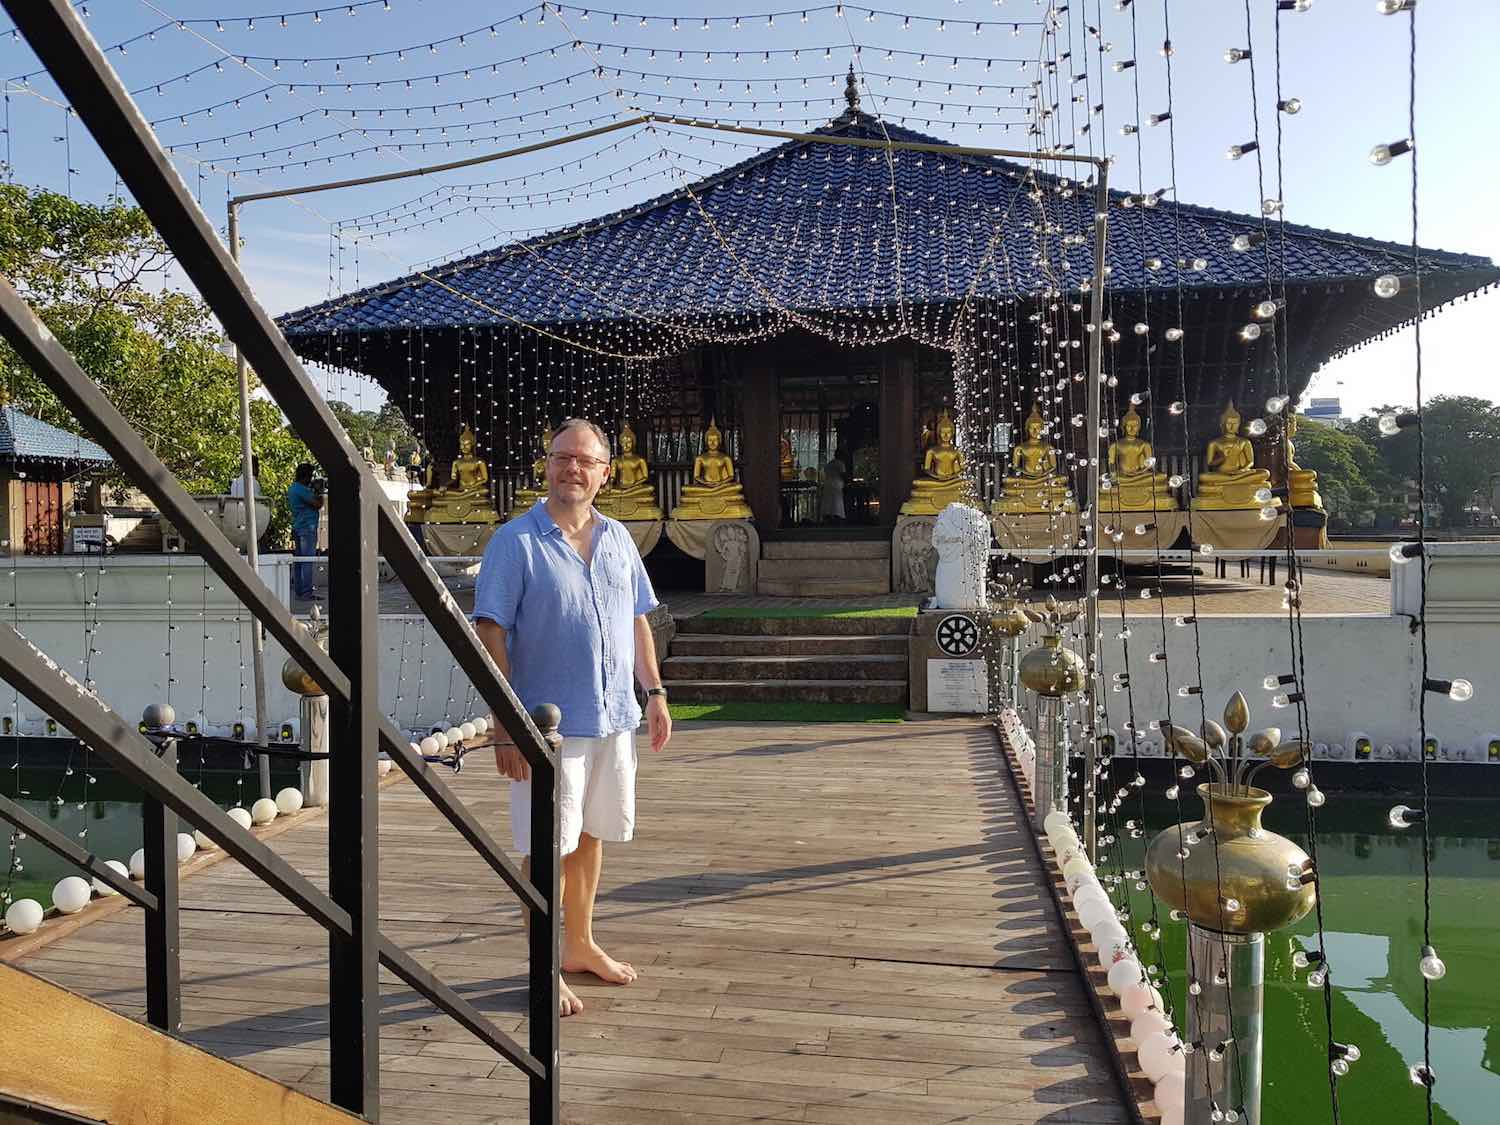 sri-lanka-colombo-temple-holiday-review-feedback-invite-to-paradise-quentin-kate-hulm.jpg